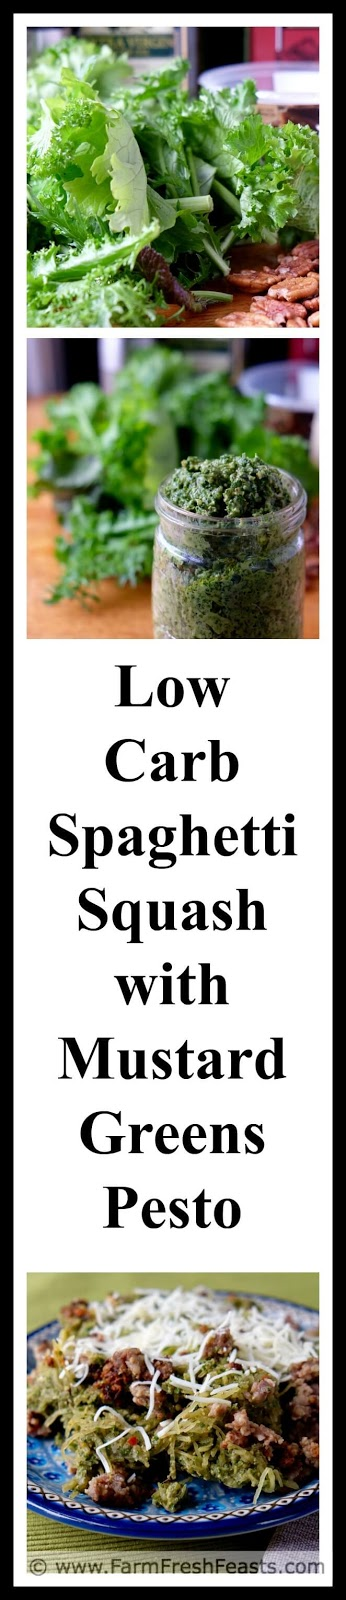 A low carb entree of baked spaghetti squash tossed with mustard greens pesto. Jazz it up with crumbled Italian sausage and cheese for a farm share dinner to please the while family.